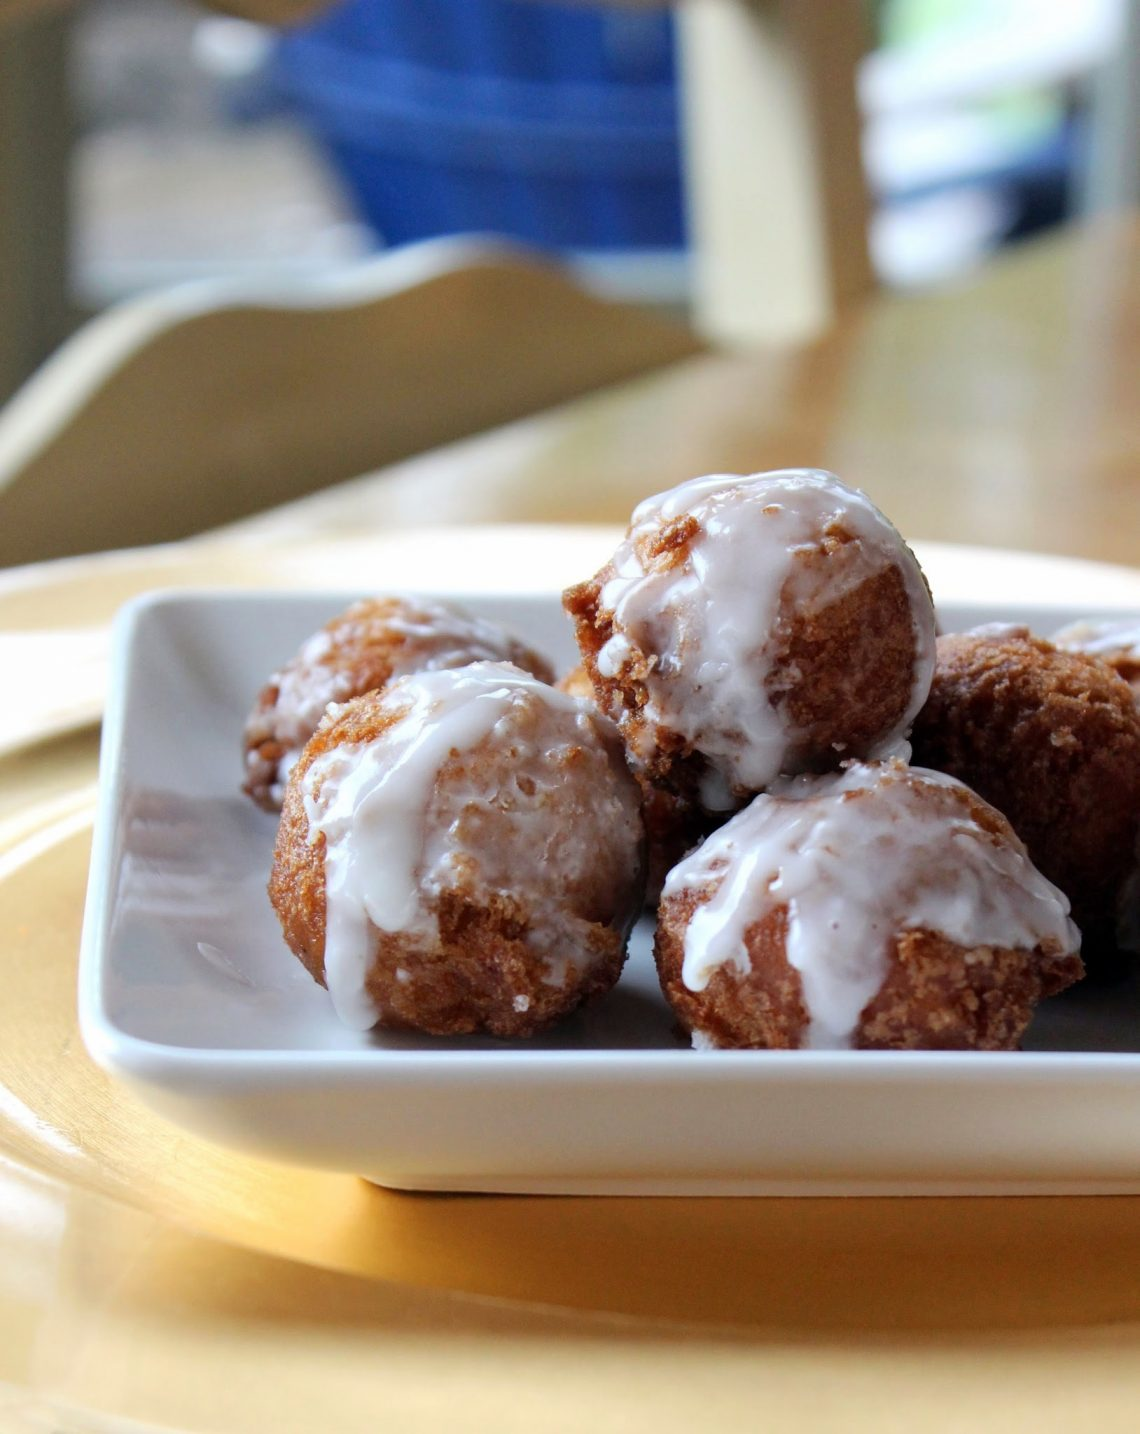 gluten free donut holes with glaze piled on a white plate